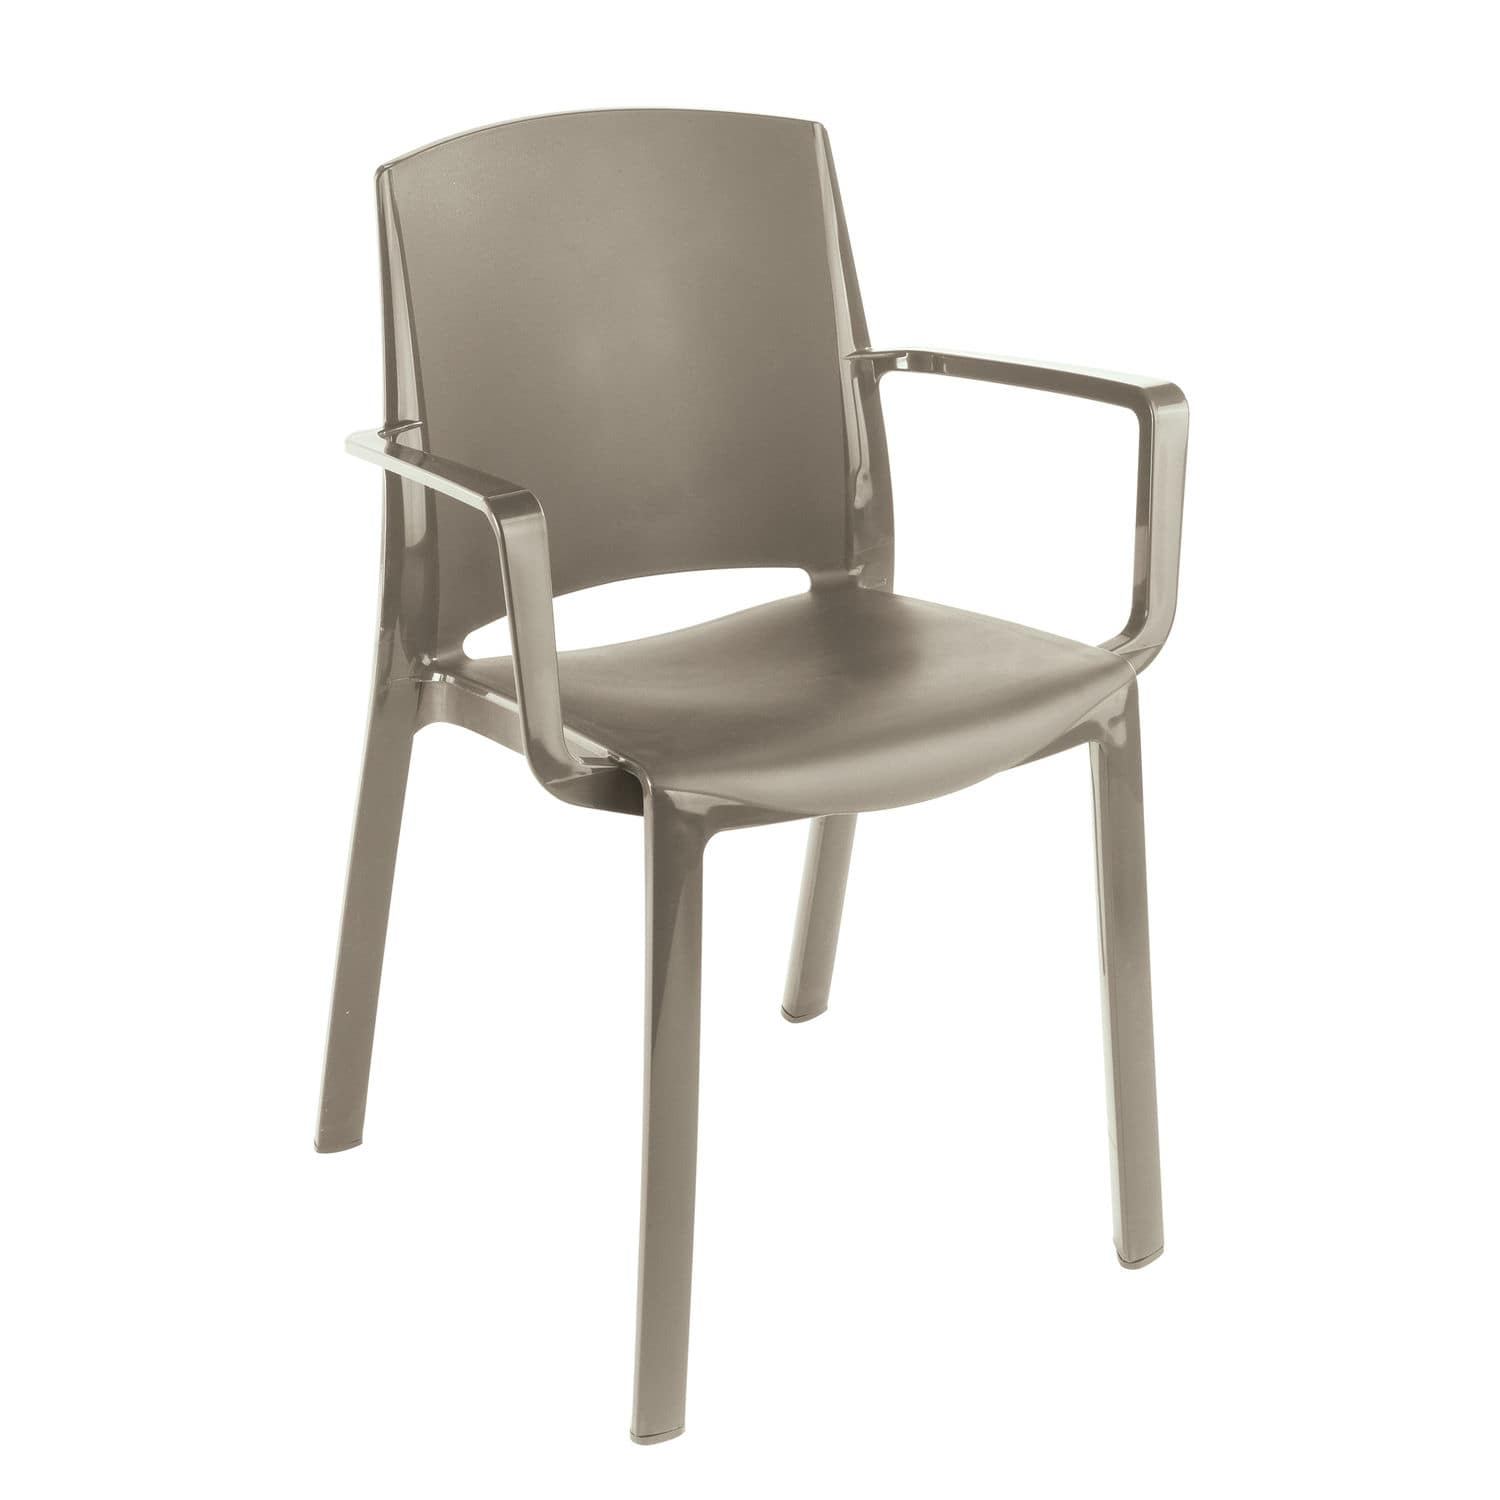 Contemporary garden chair stackable PVC MILTON GROSFILLEX